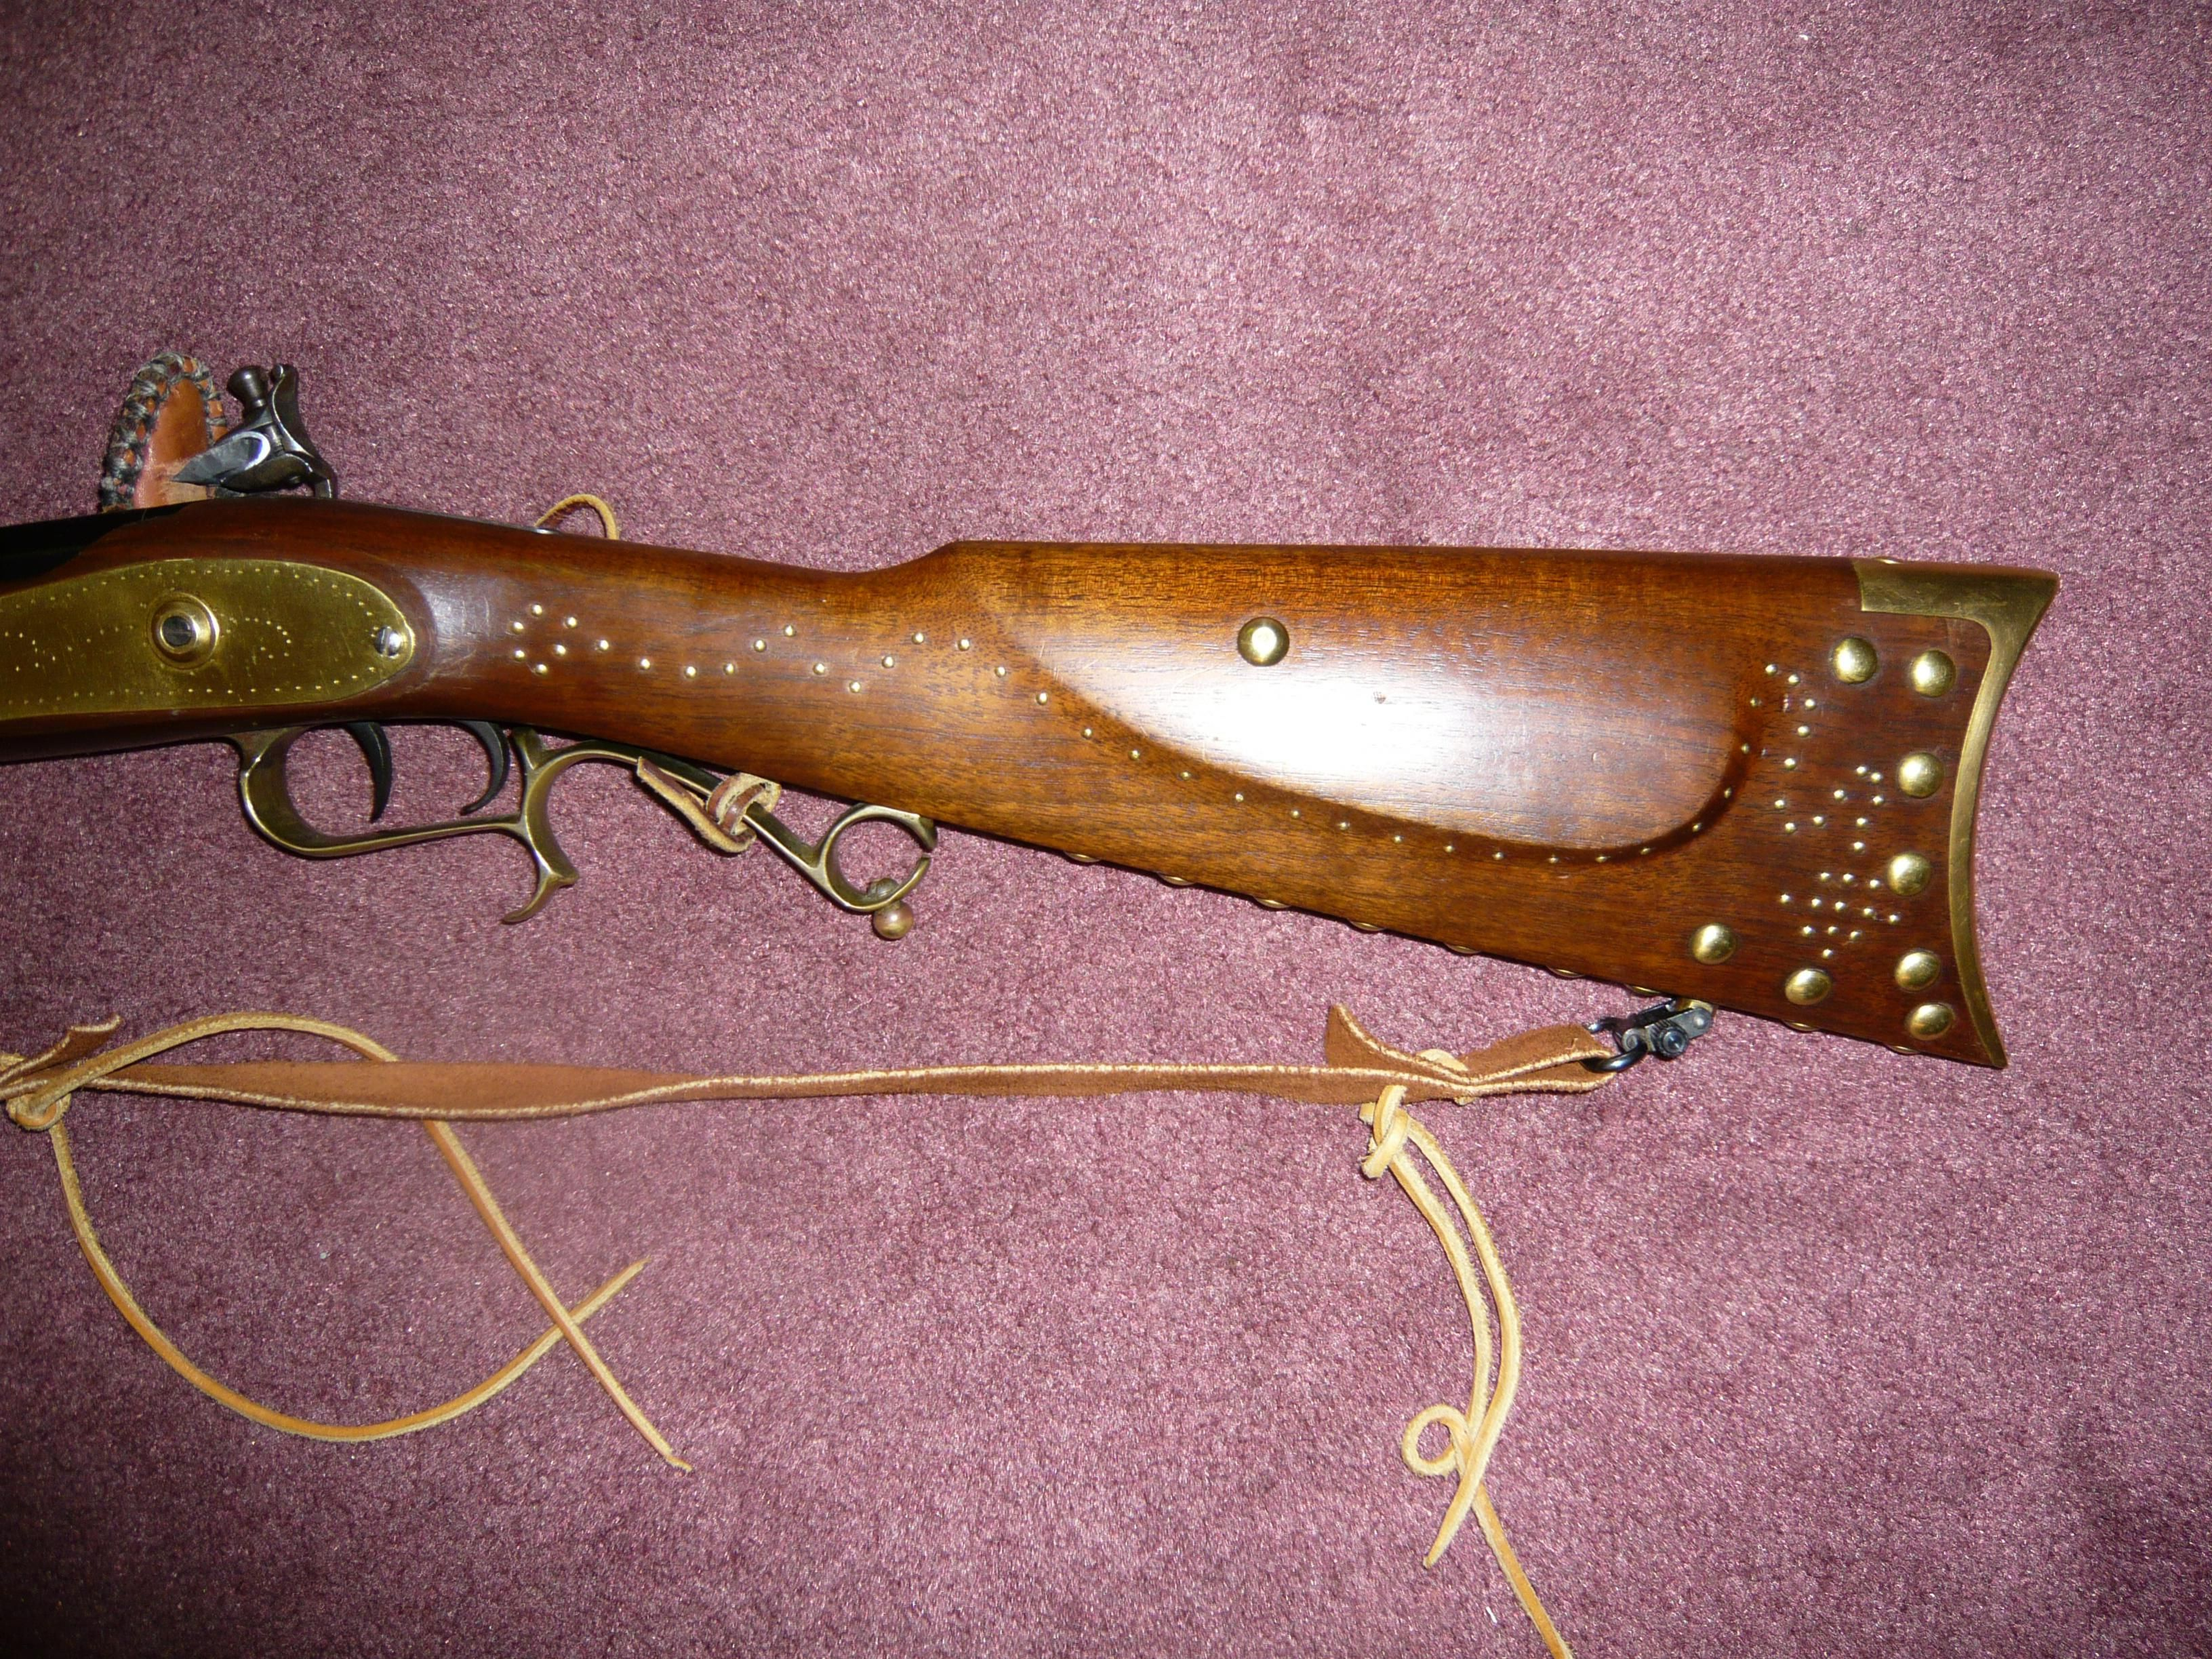 Thompson Center 54 cal muzzle loader with